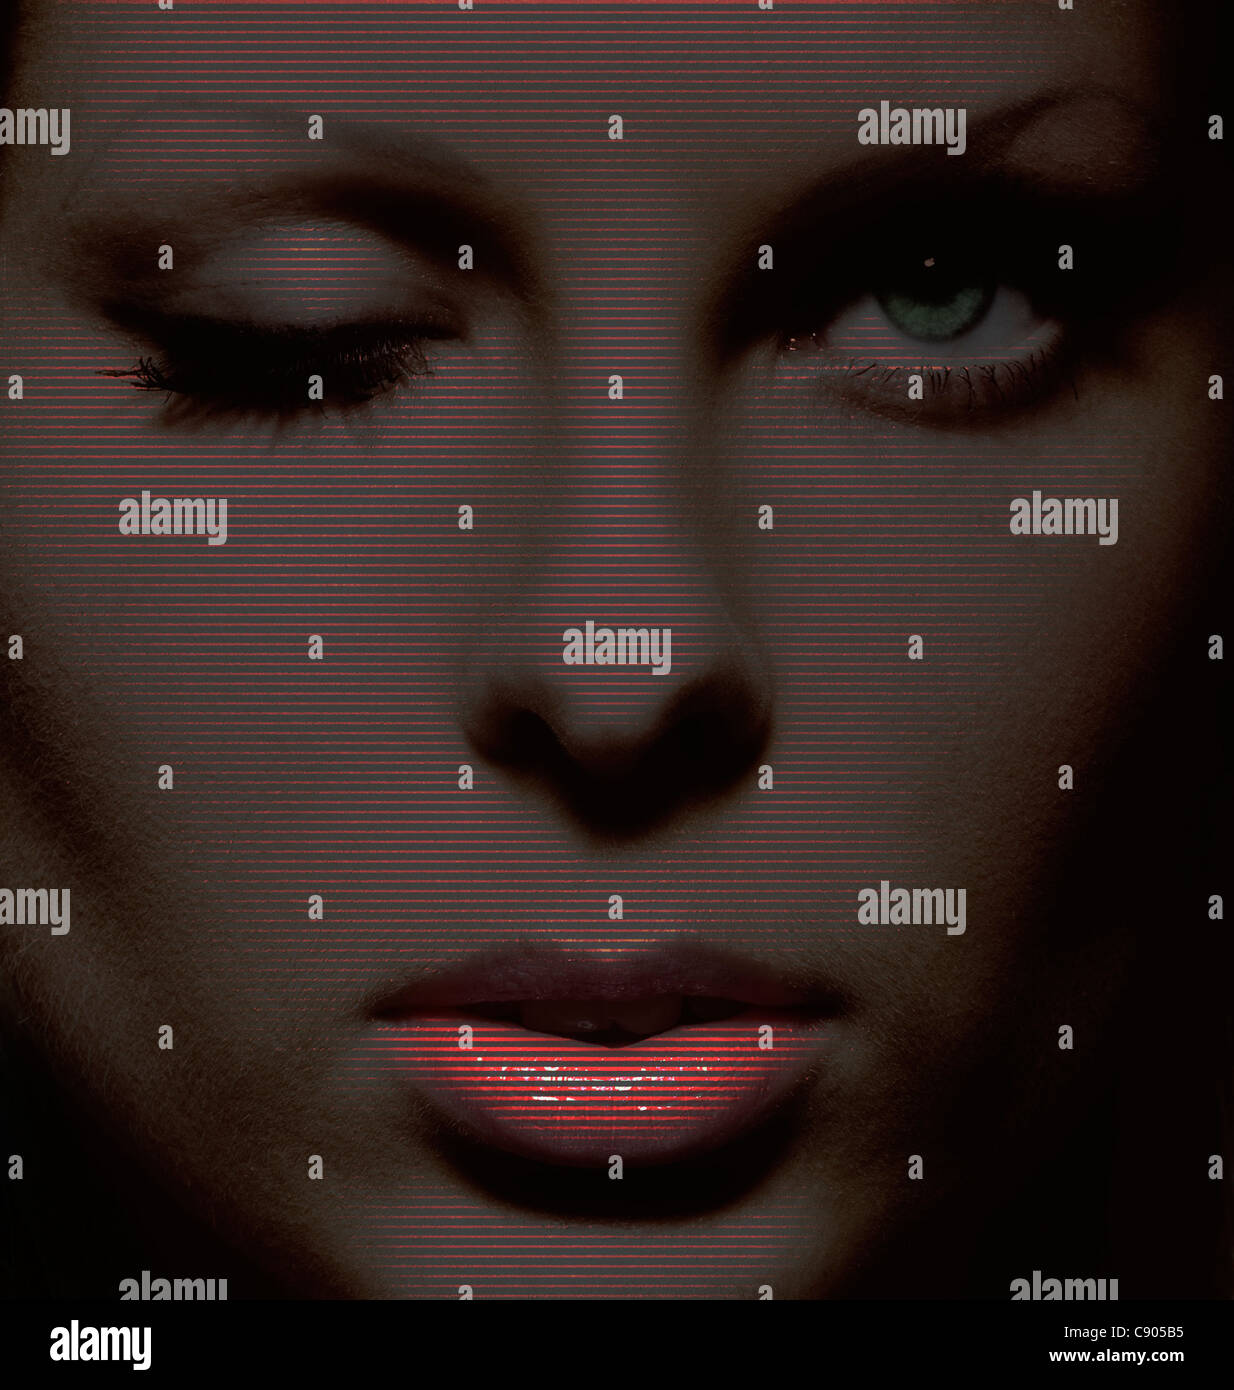 Female face with lines going through it.Television,scanning,lines per inch, communication,screen,vision,view,Big - Stock Image